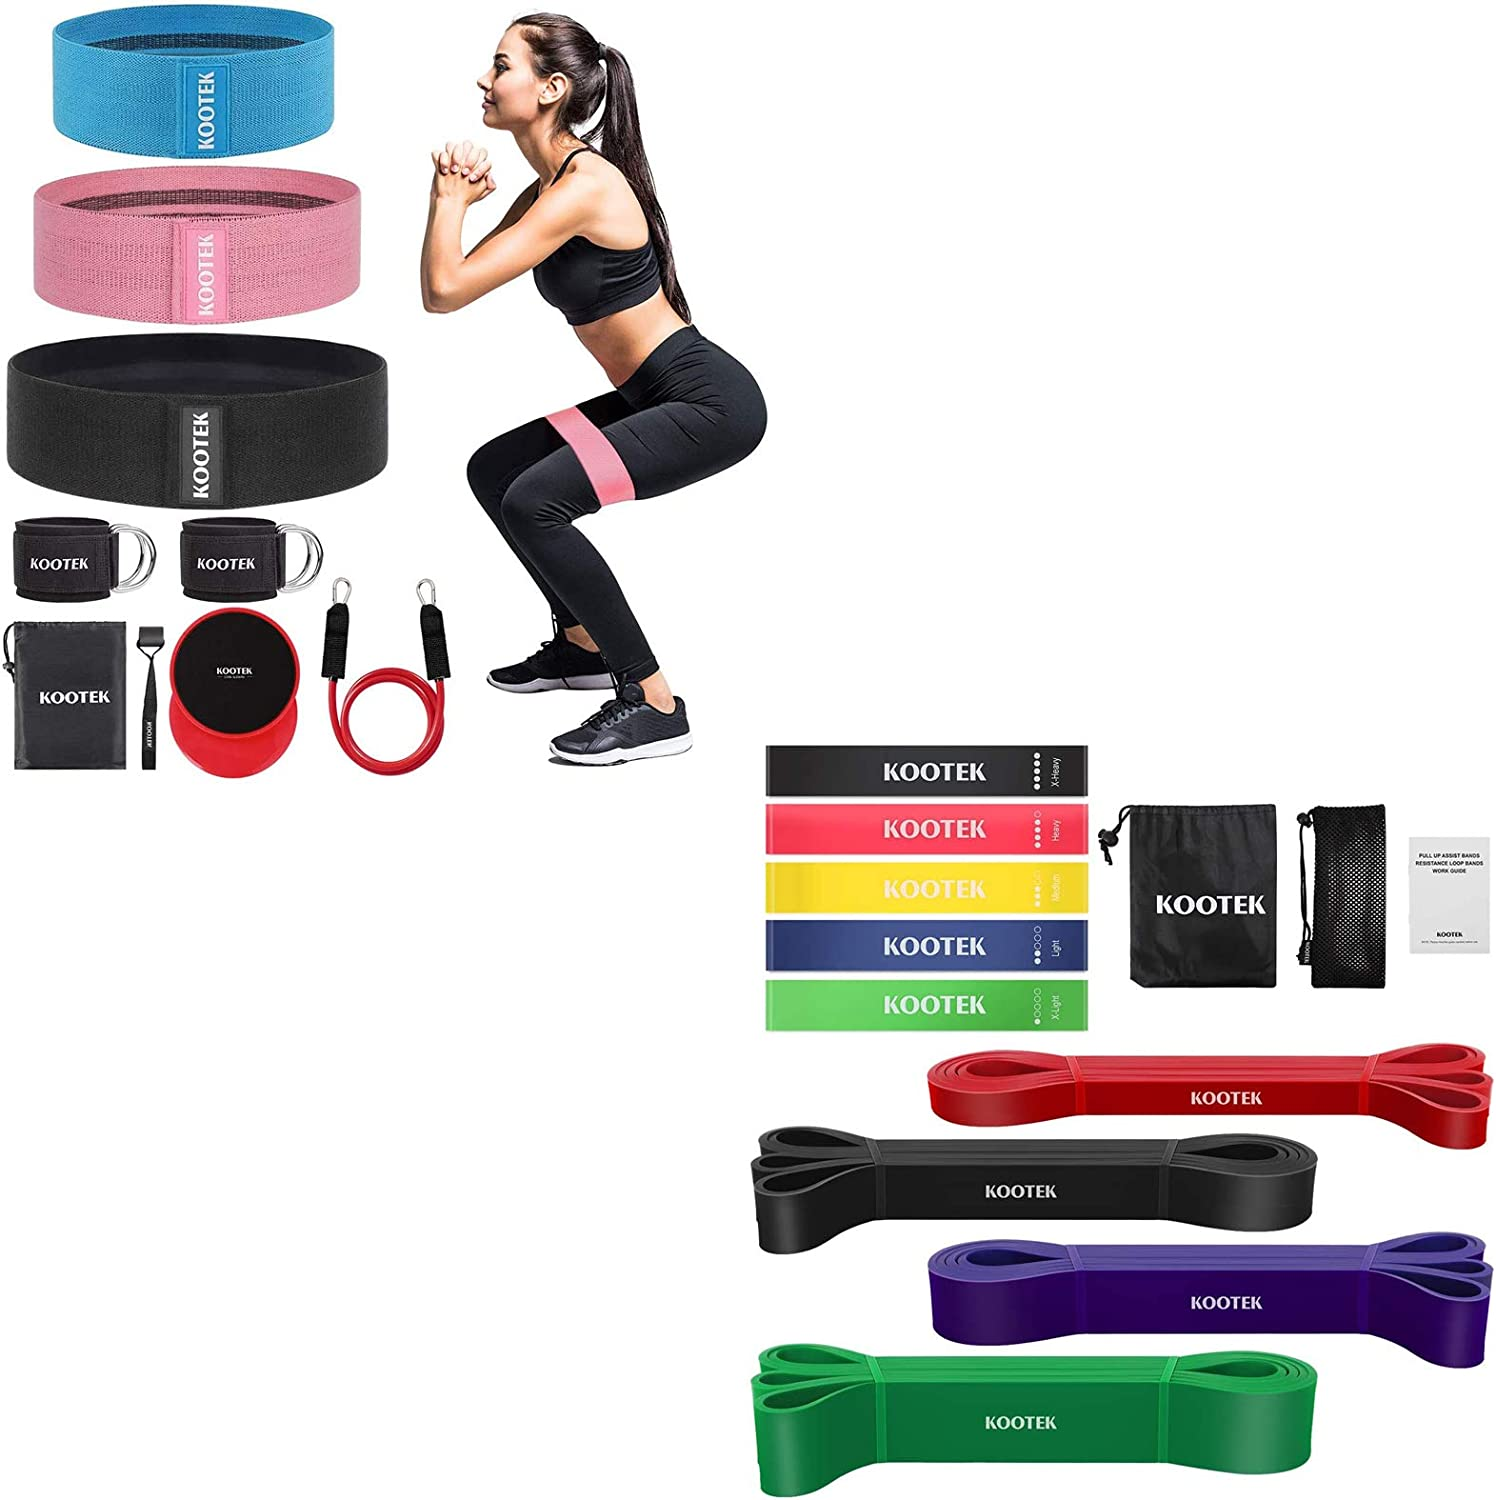 Kootek Resistance Bands, Booty Band for Leg and Butt for Home Gym Workout